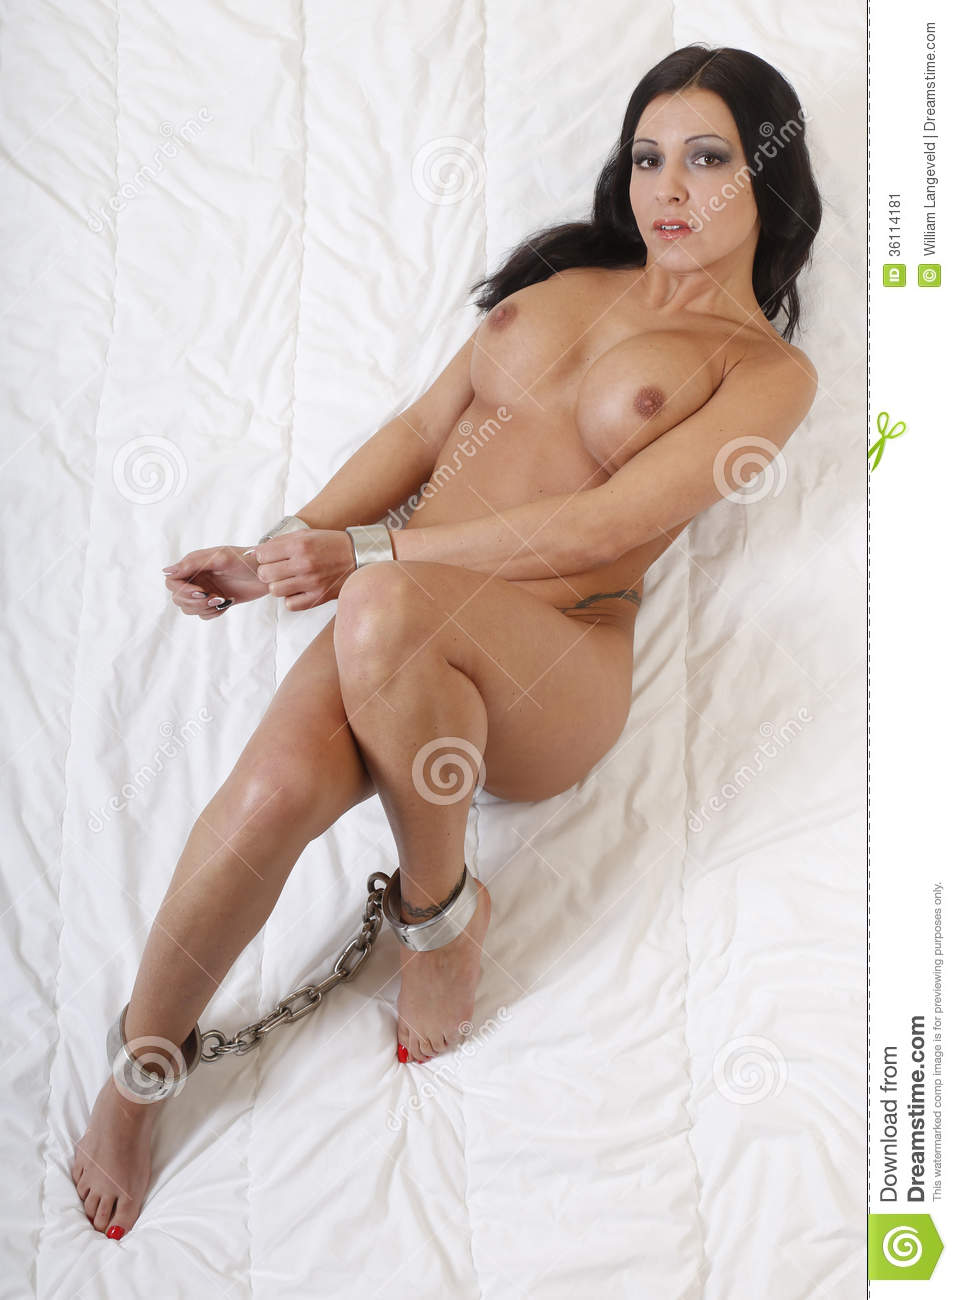 Beautful Nude Or Naked Woman Handcuffed Stock Image -6996